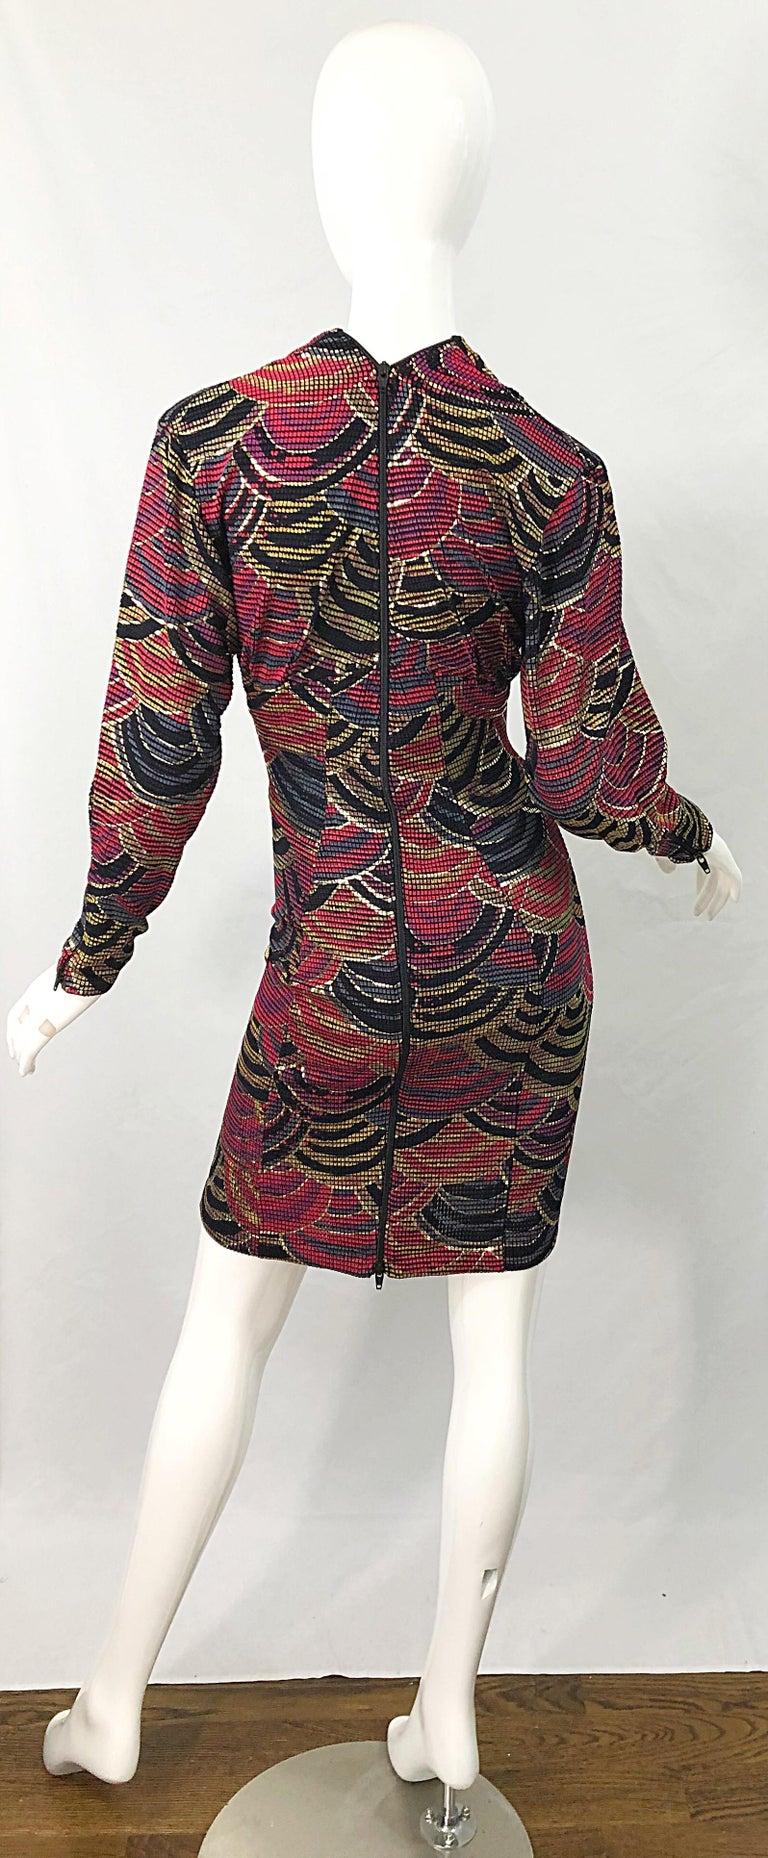 1980s Hand Painted Reversible Red + Gold + Green Vintage 80s Avant Garde Dress For Sale 5